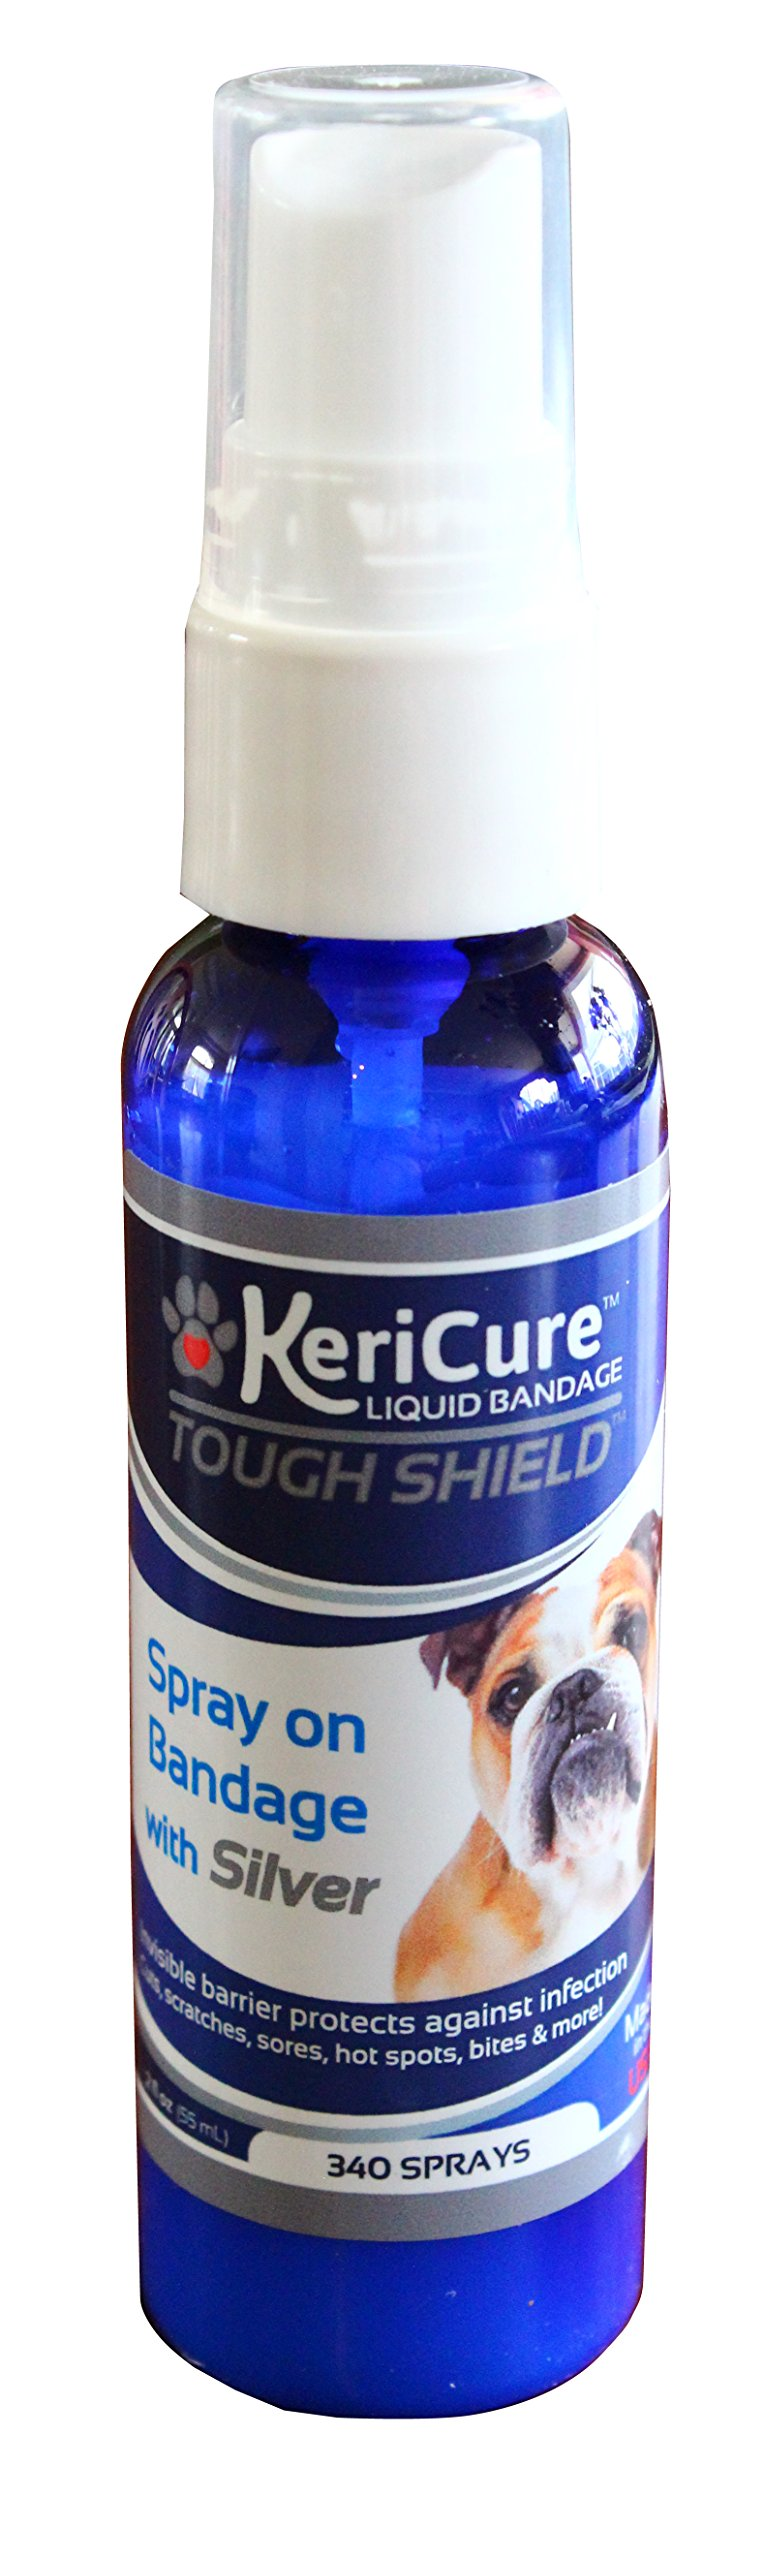 KeriCure Tough Shield Liquid Bandage, 2oz Spray on Liquid Bandage for Pets, Dogs, Cats and Small Animal Skin and Wound Care by KeriCure